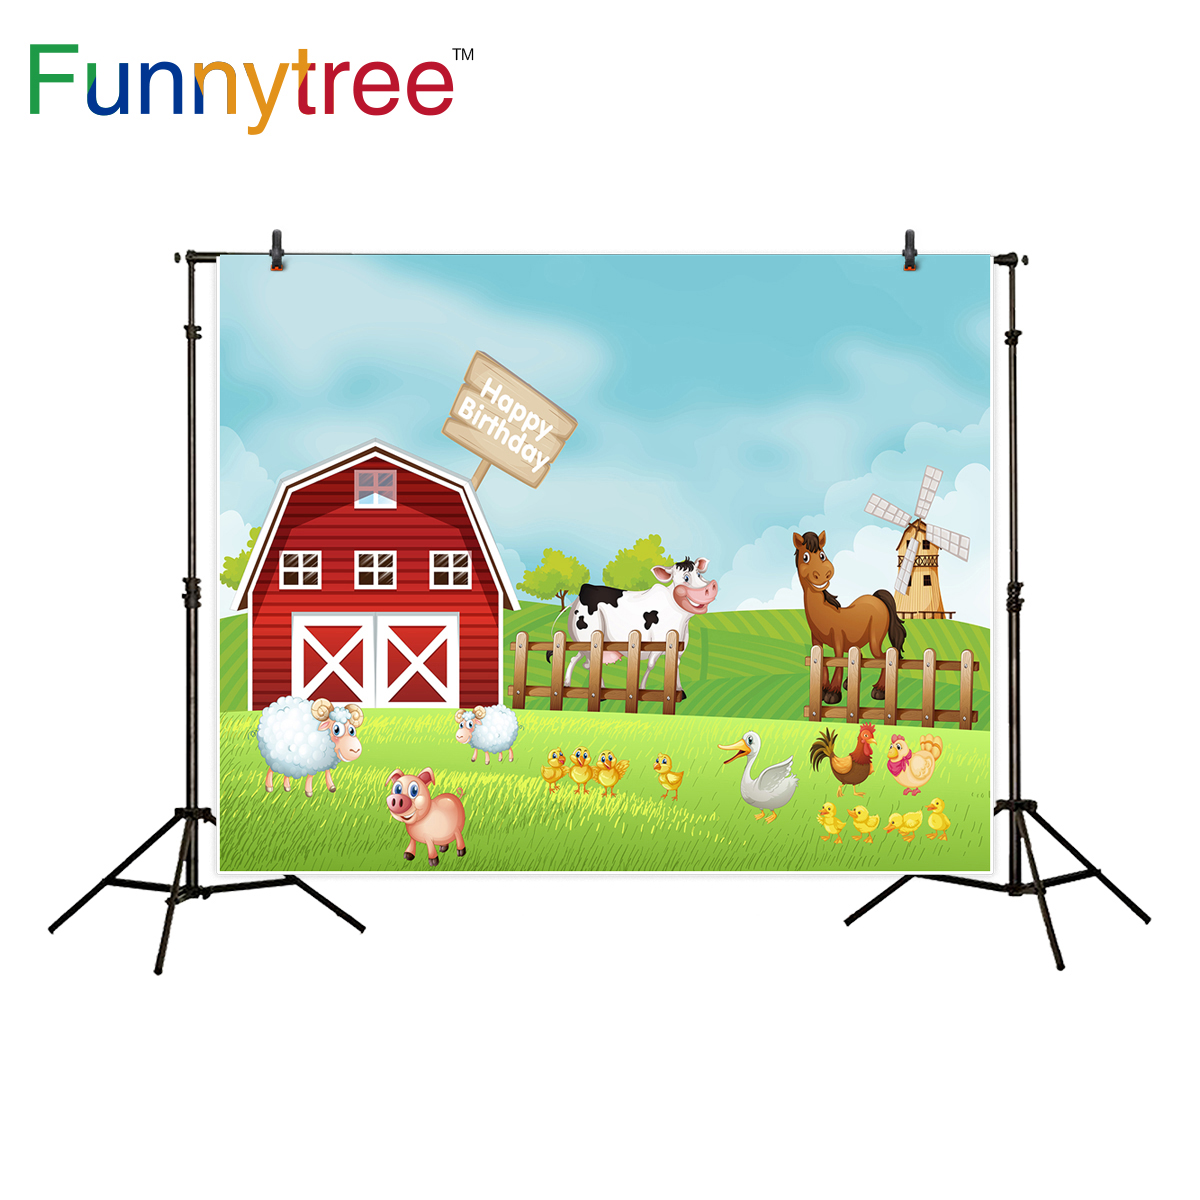 Funnytree background for photography red barn farm animal windmill birthday party cartoon backdrop photo studio photocall new funnytree prince photography background baby shower royal blue crown damask birthday backdrop photocall photo studio printed